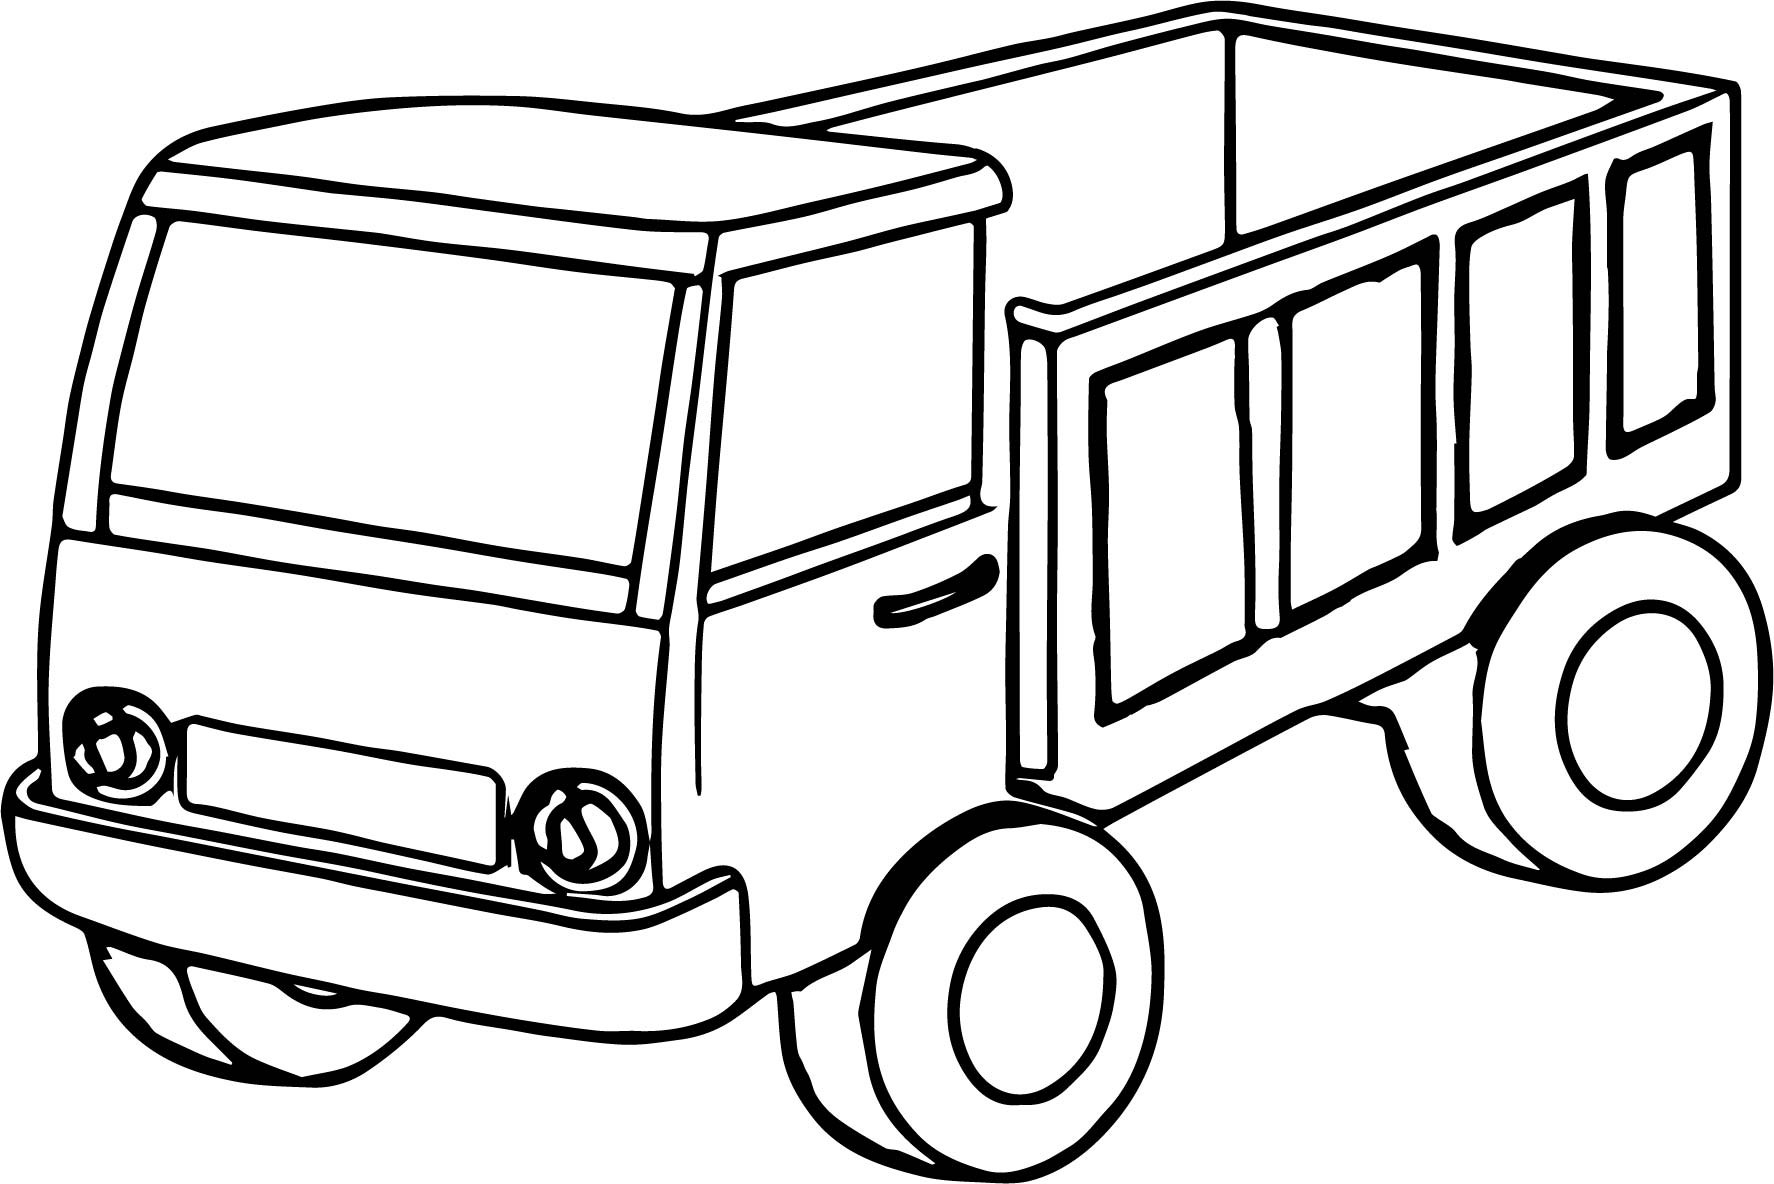 kenworth truck coloring pages coloring kenworth pages truck 2020 monster truck truck pages kenworth coloring